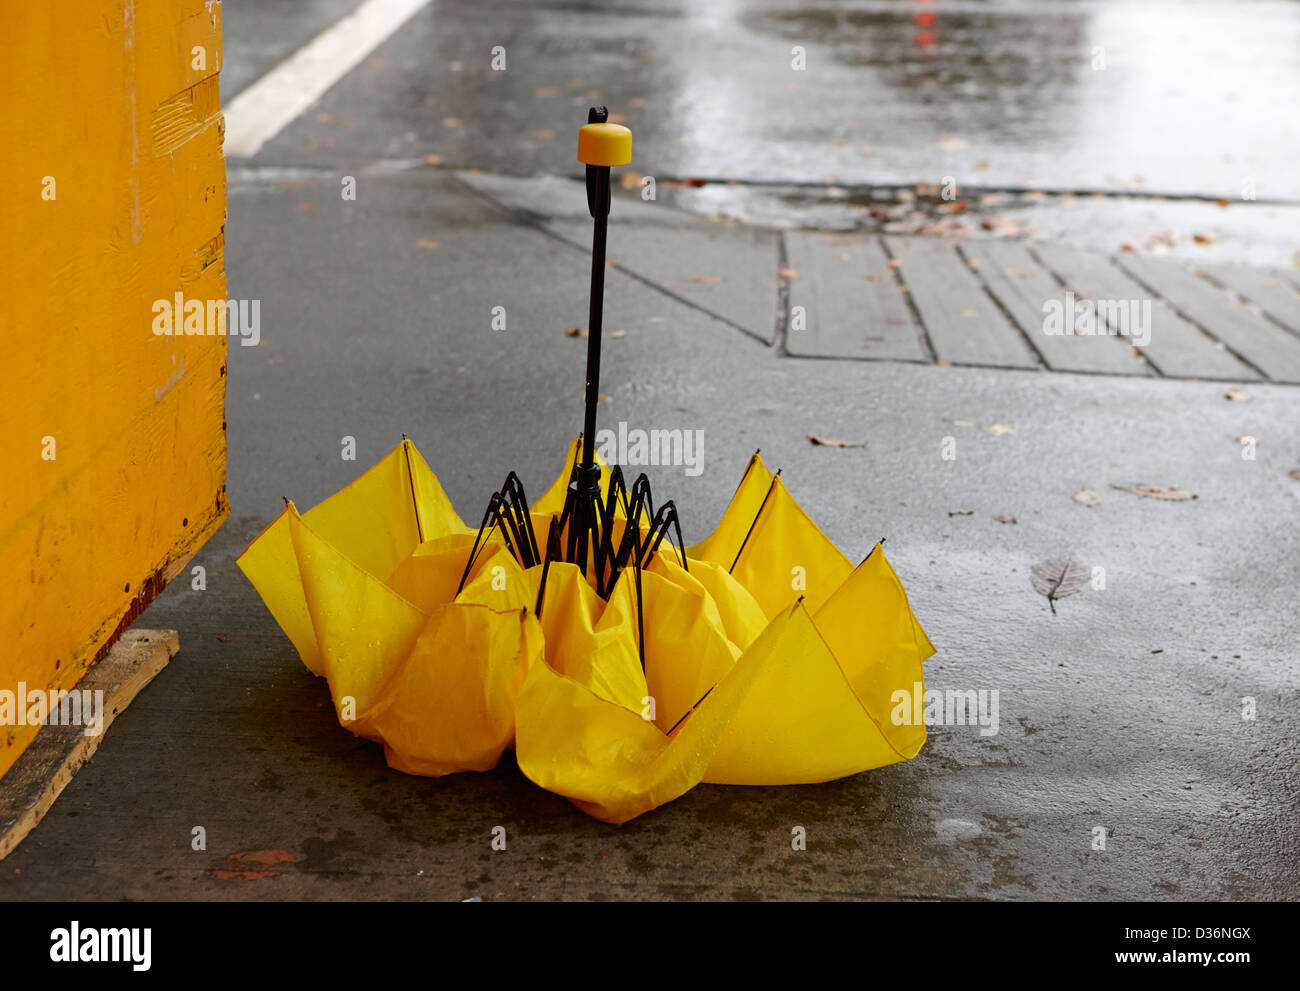 collapsed broken yellow umbrella on a wet rainy day in downtown Vancouver BC Canada - Stock Image